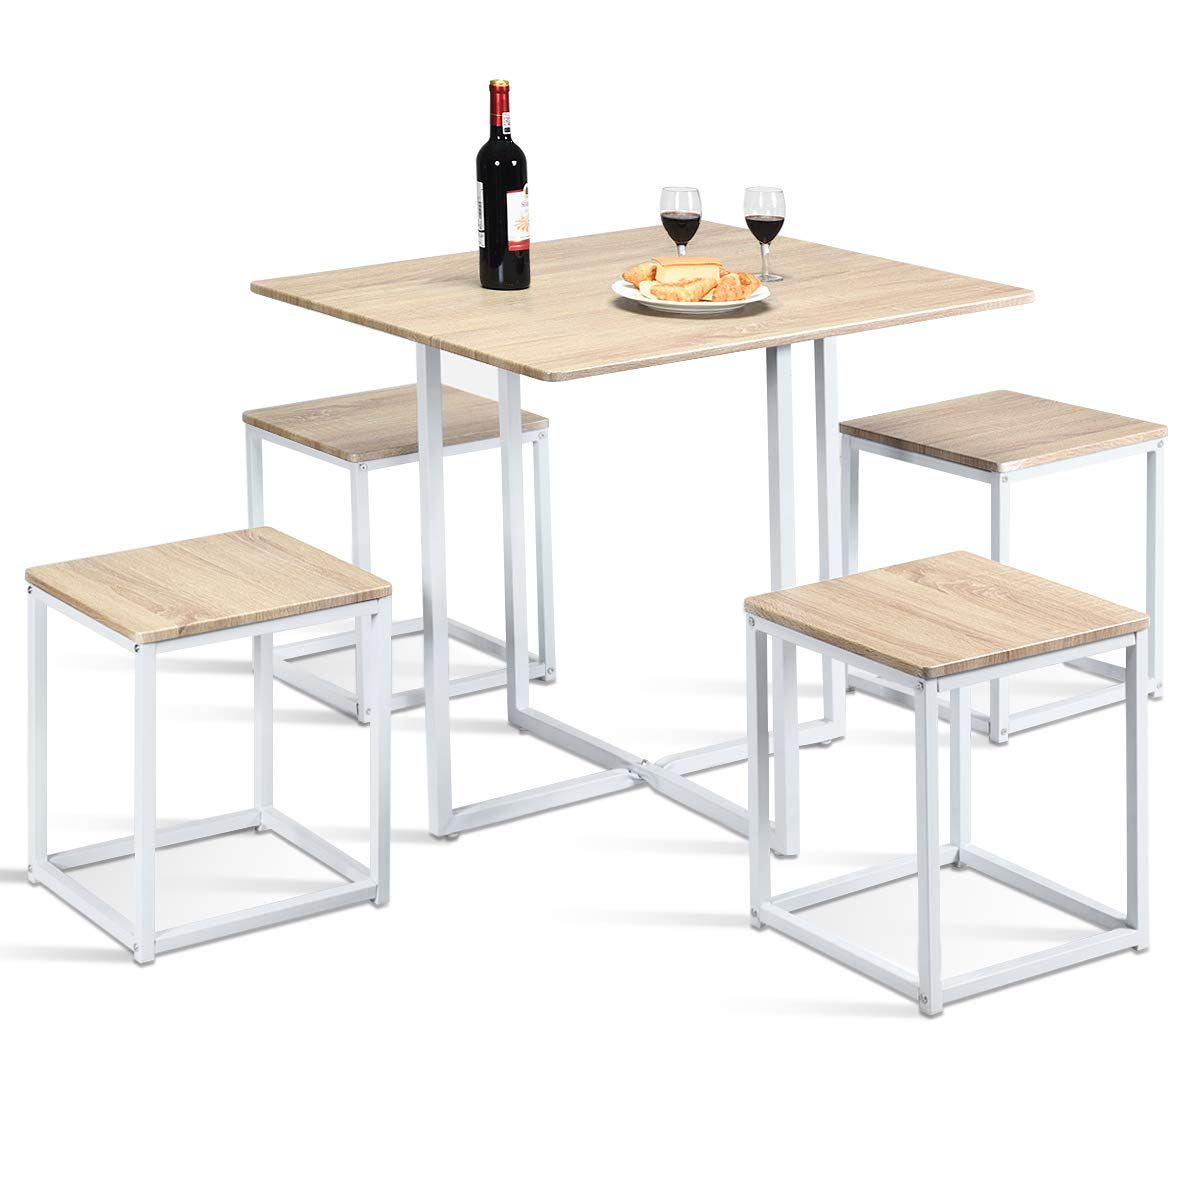 Giantex 5 Piece Dining Table Set with 4 Stools Metal Frame Space-Saving Storage Bar Pub Kitchen (Beige & White) by Giantex